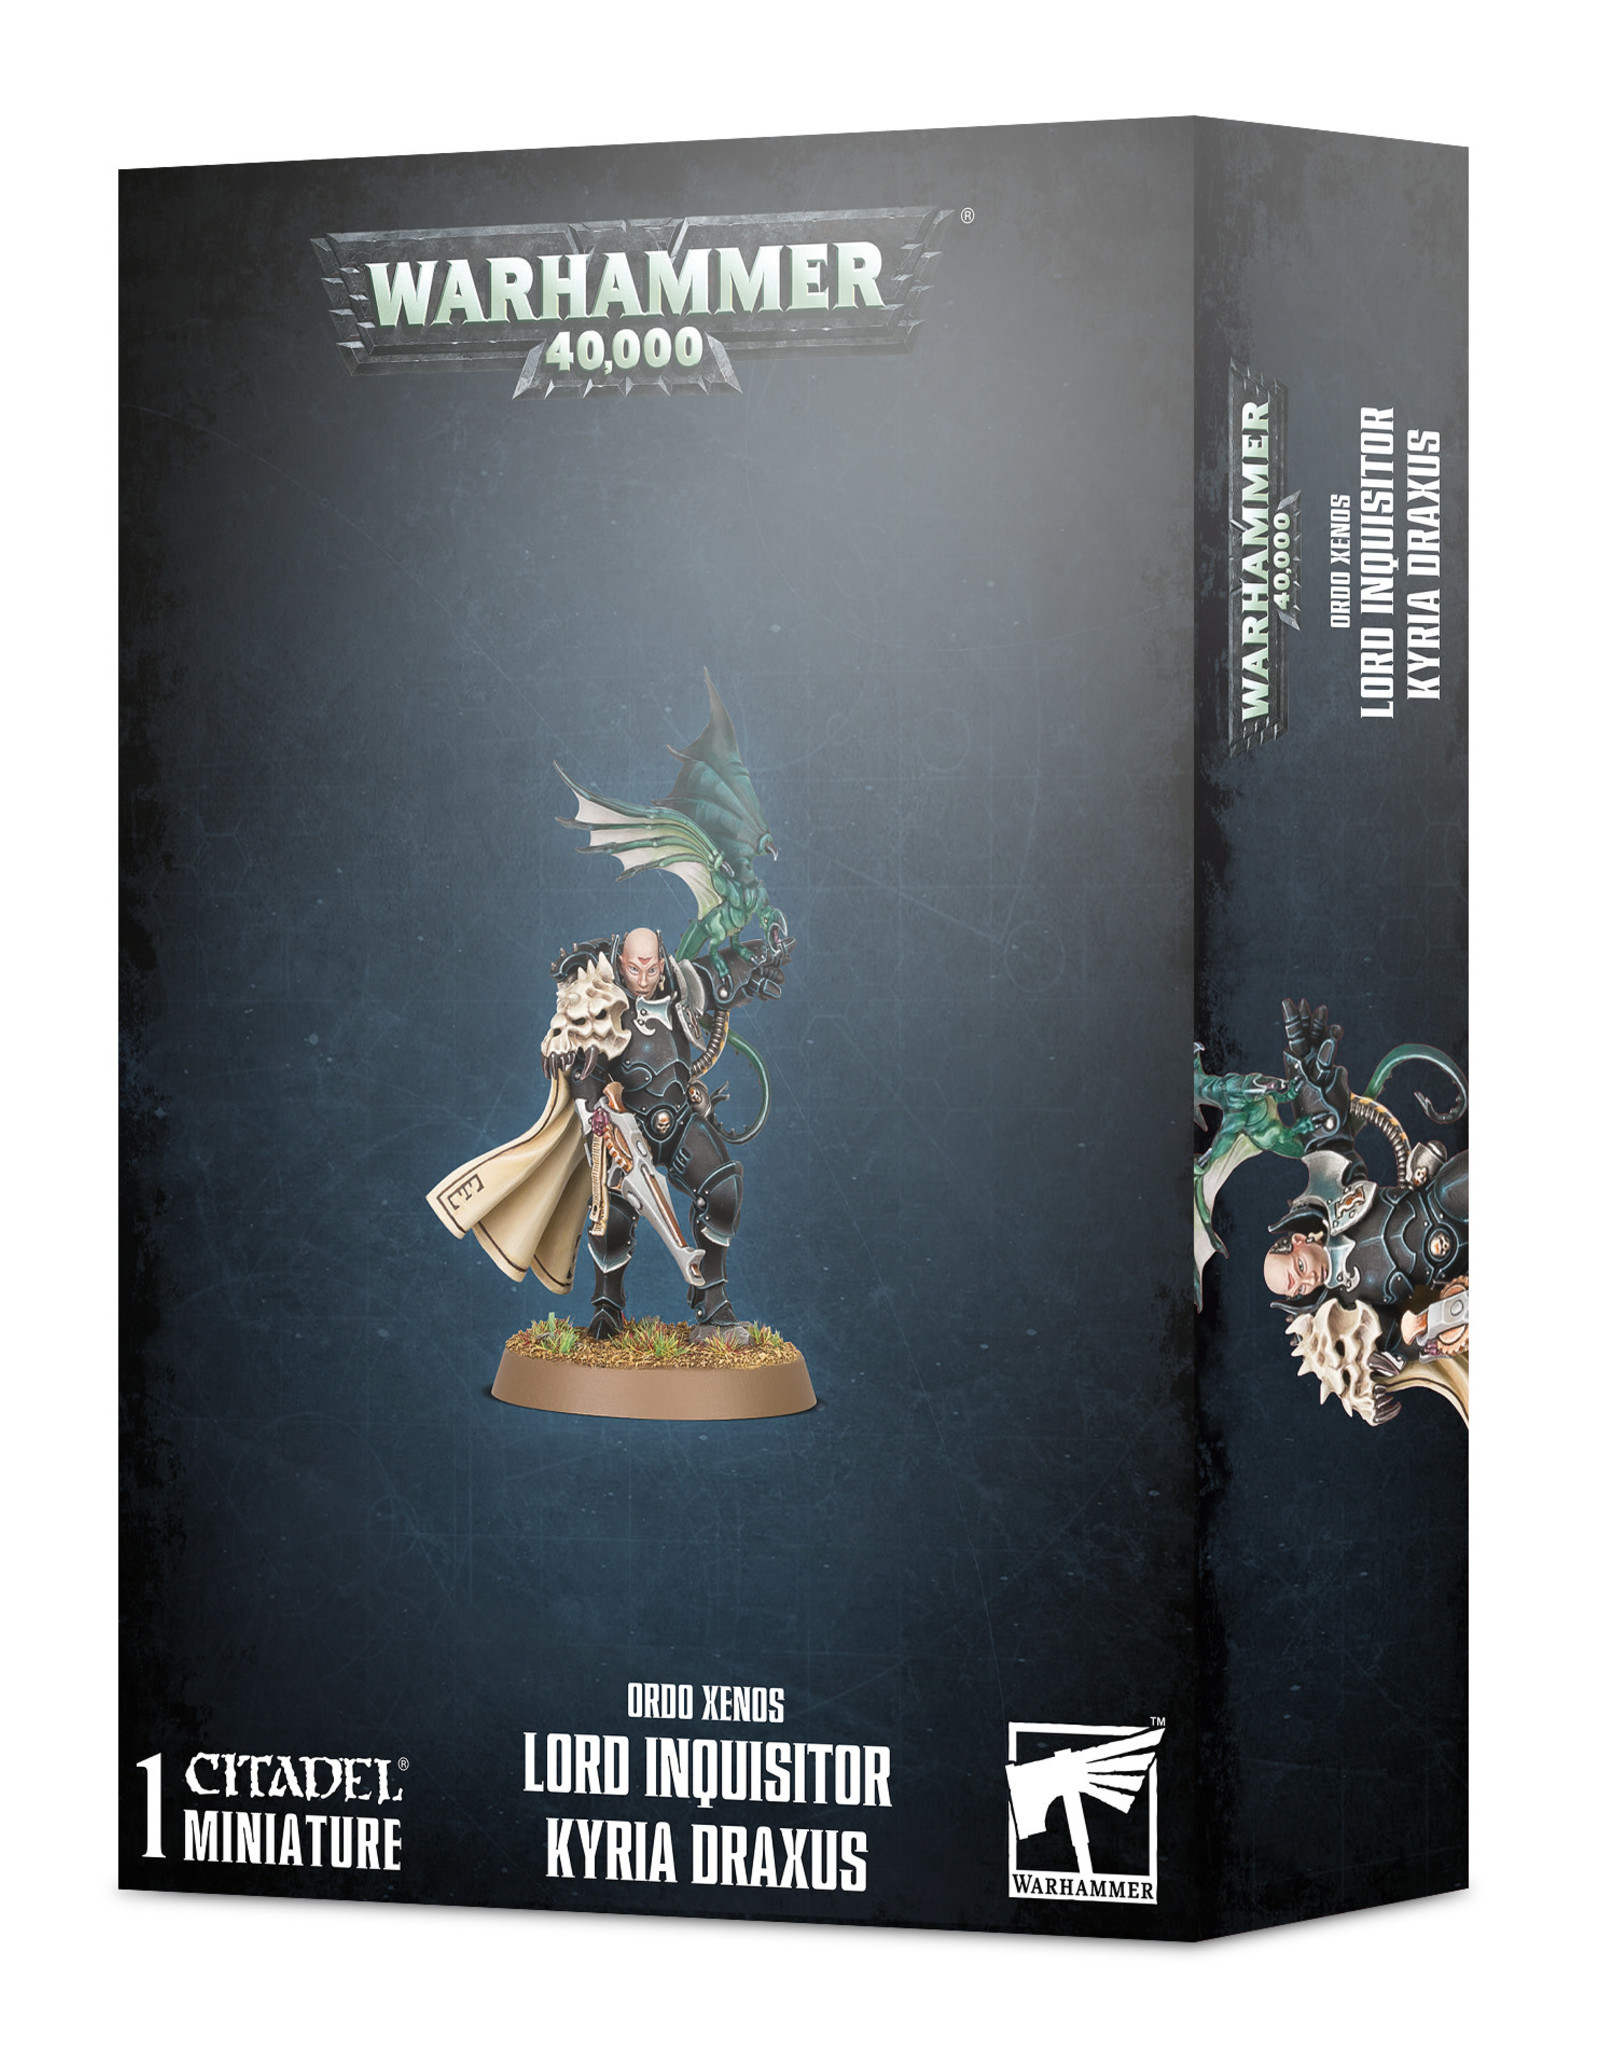 Warhammer 40K Lord Inquisitor Kyria Draxus